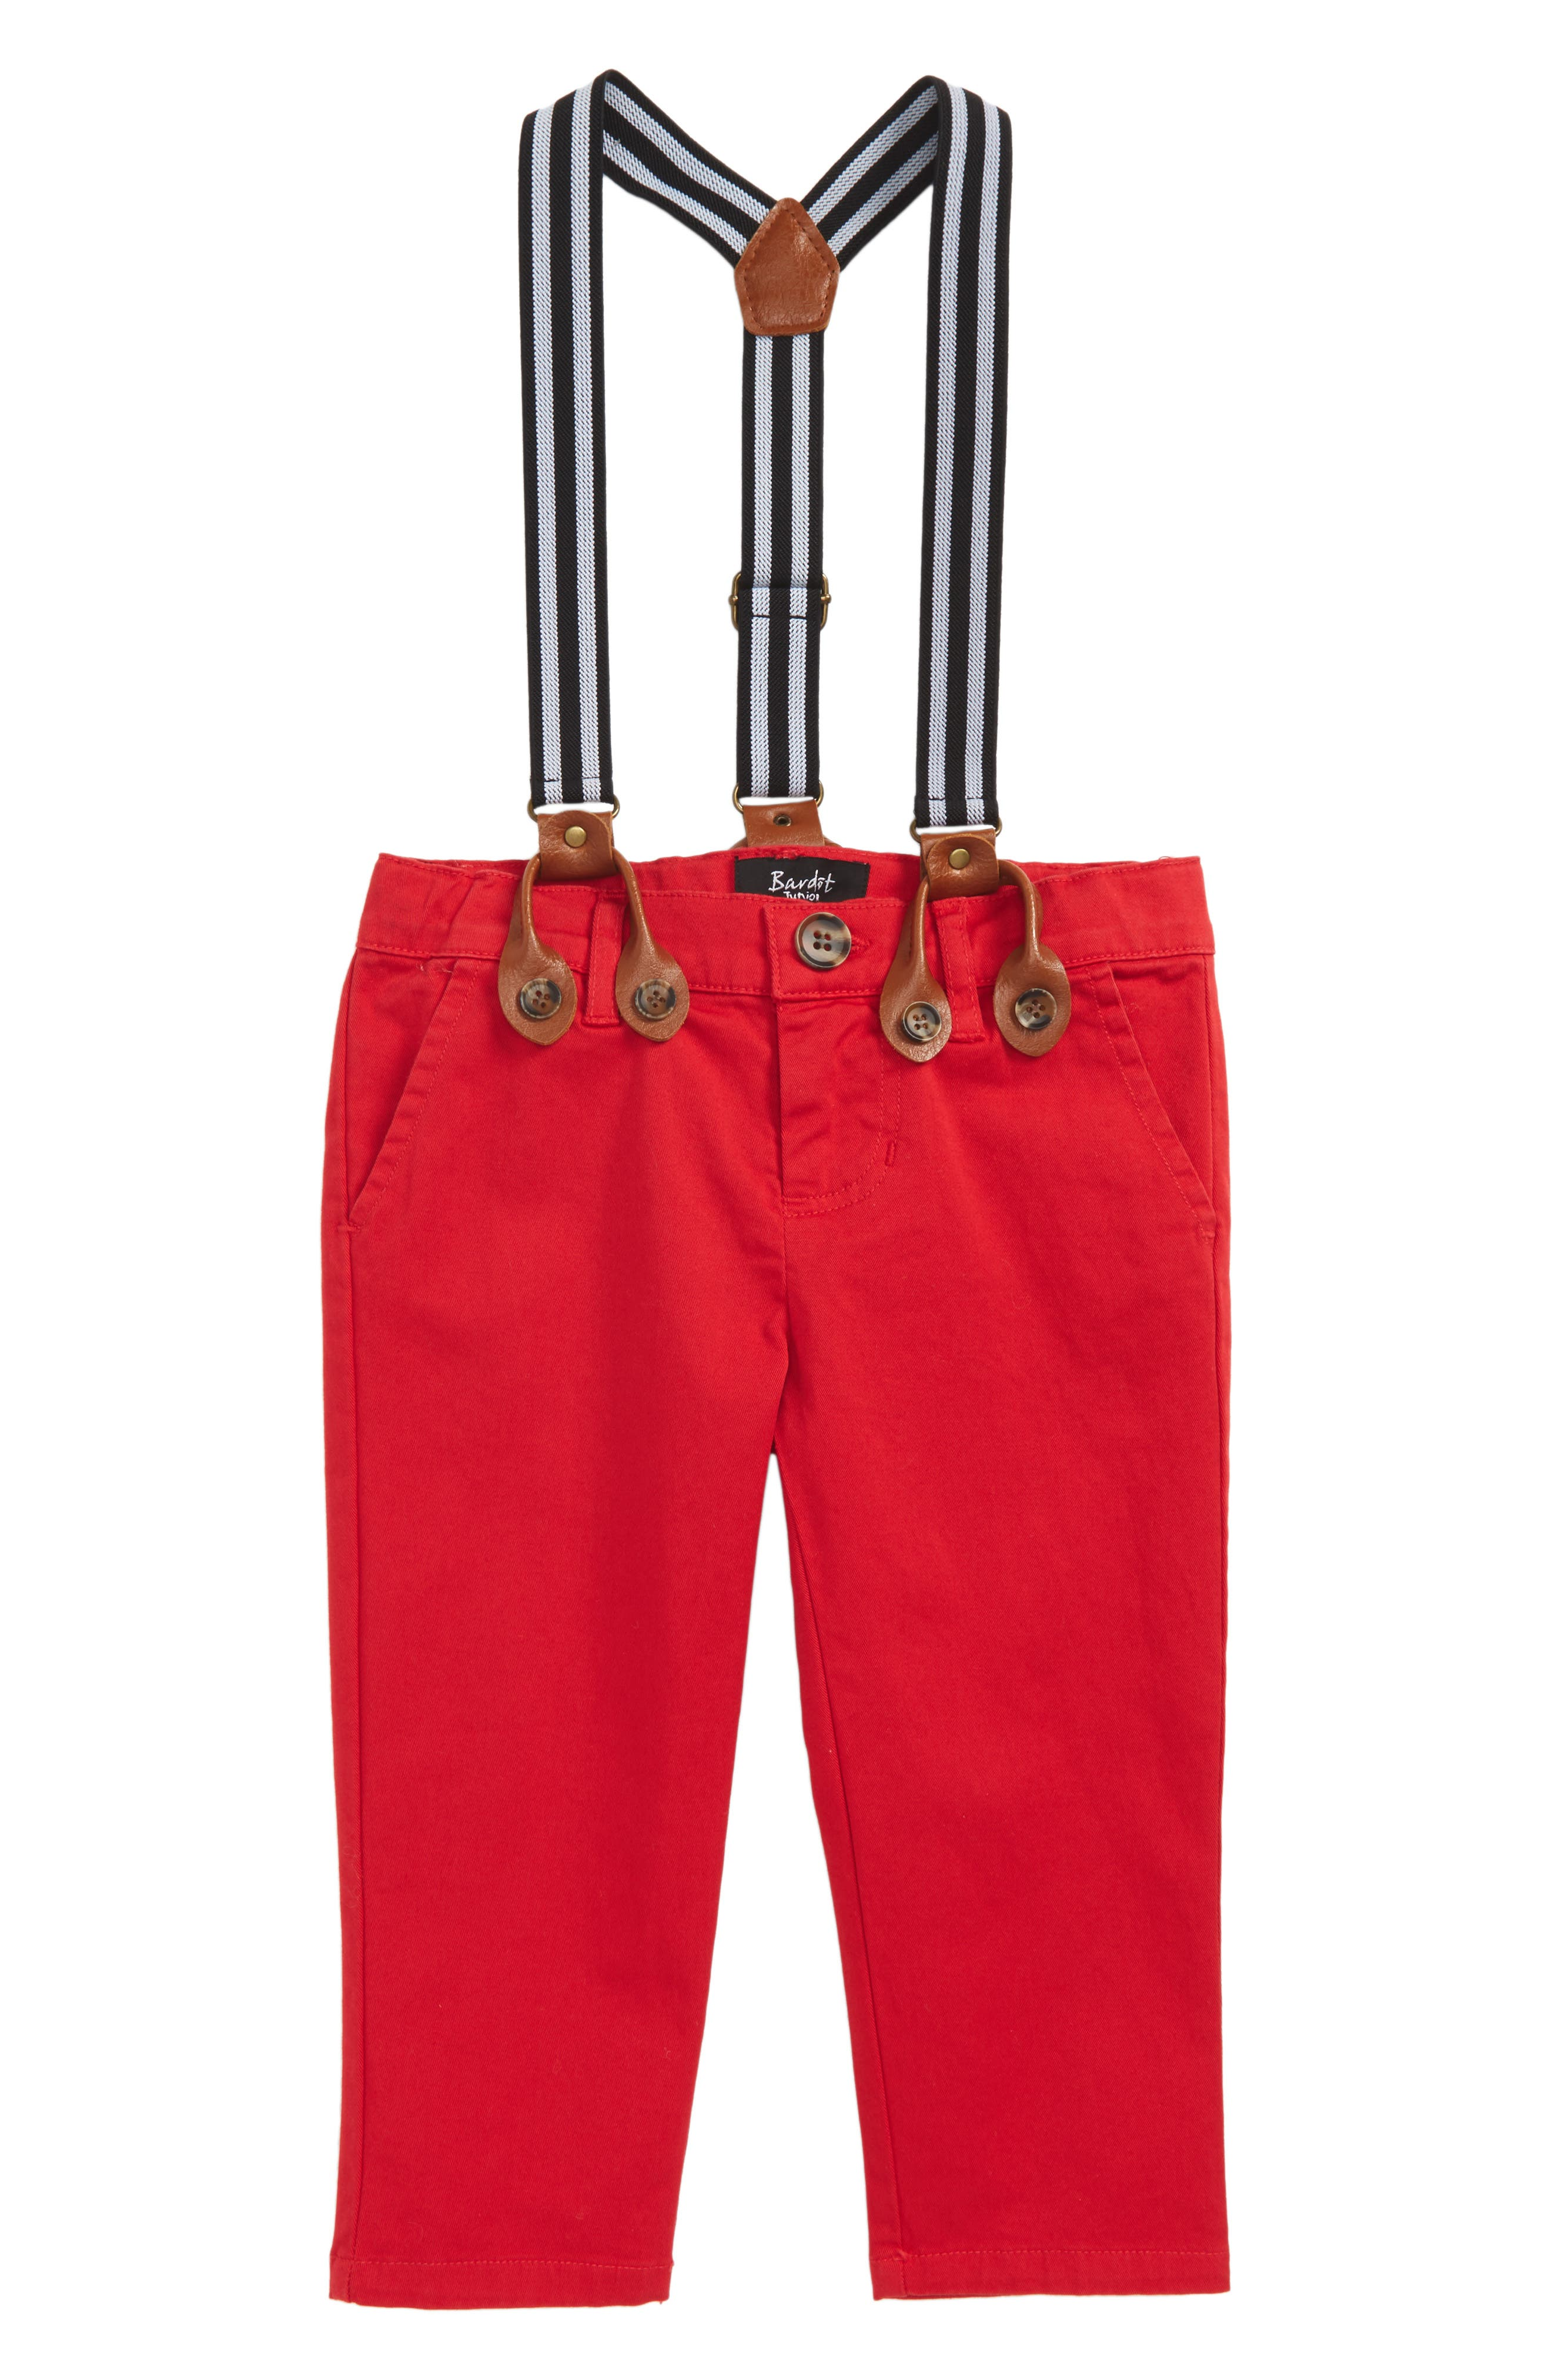 Main Image - Bardot Junior Chinos & Suspenders Set (Baby Boys)